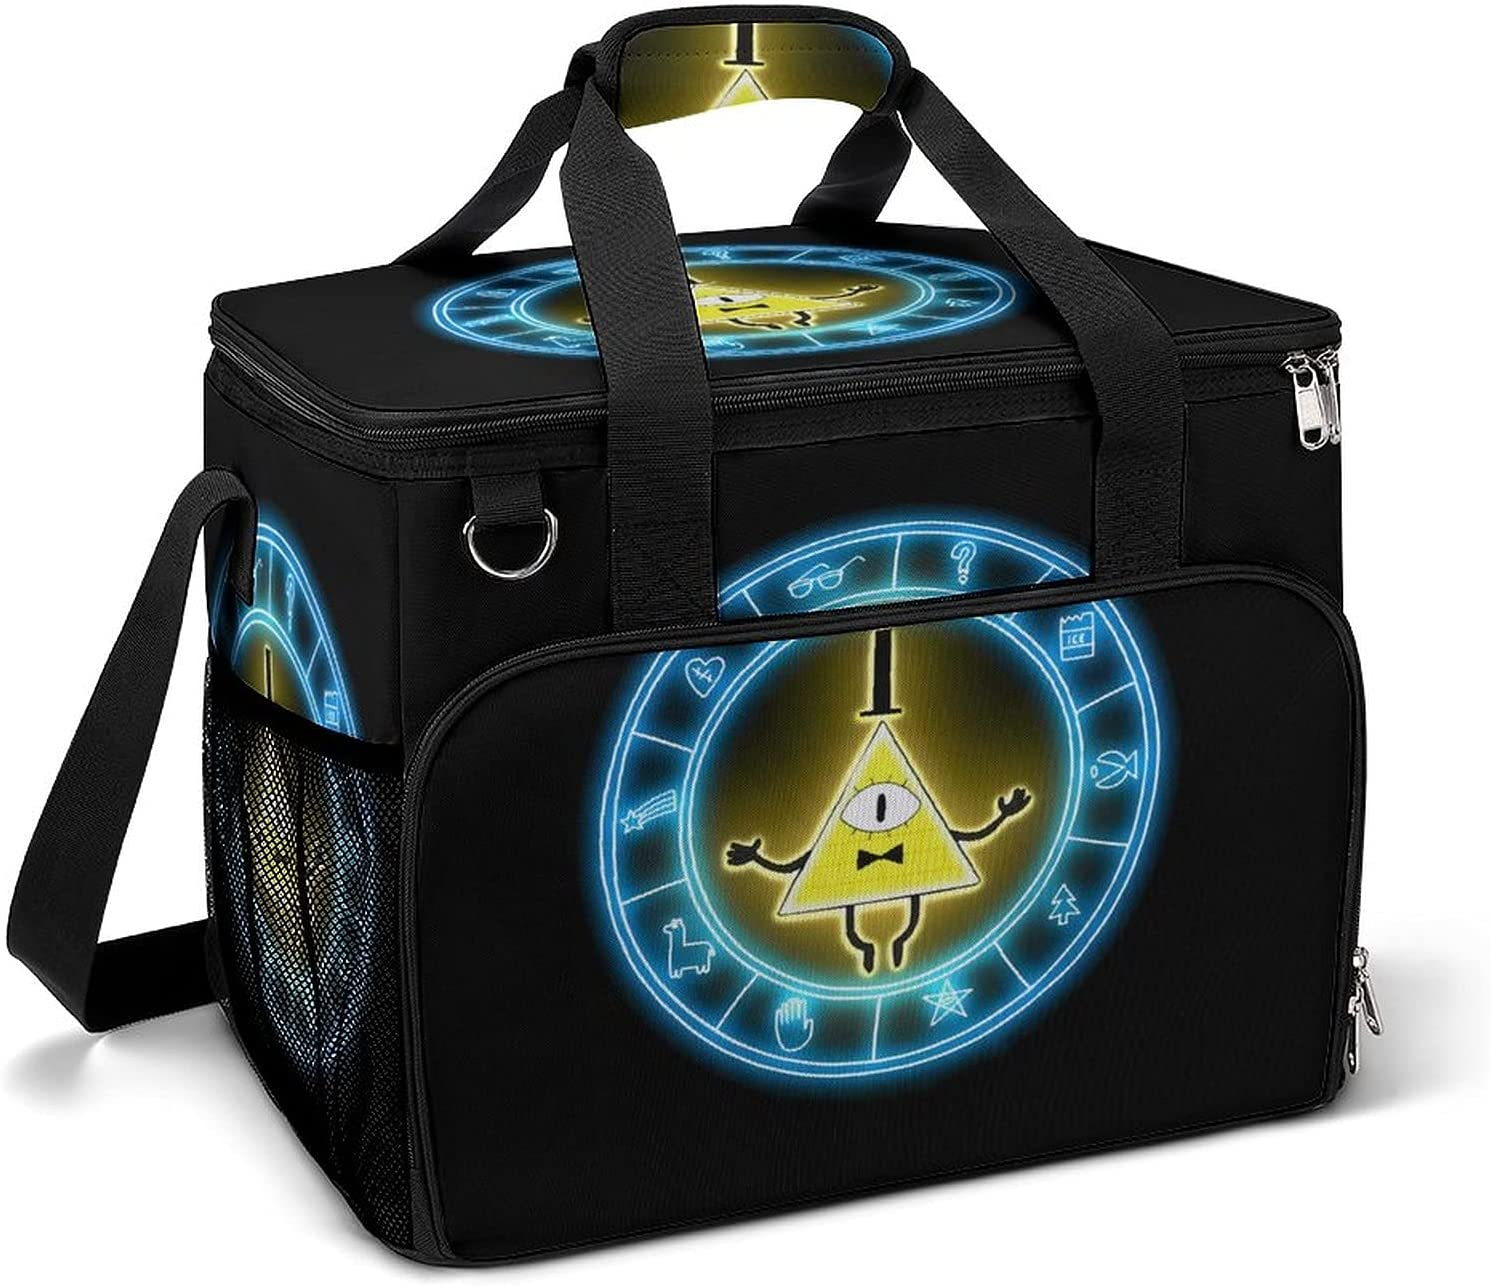 Genuine Large Anime Cooler Bag Lunch Airtight Camping Detroit Mall Insu ice pack